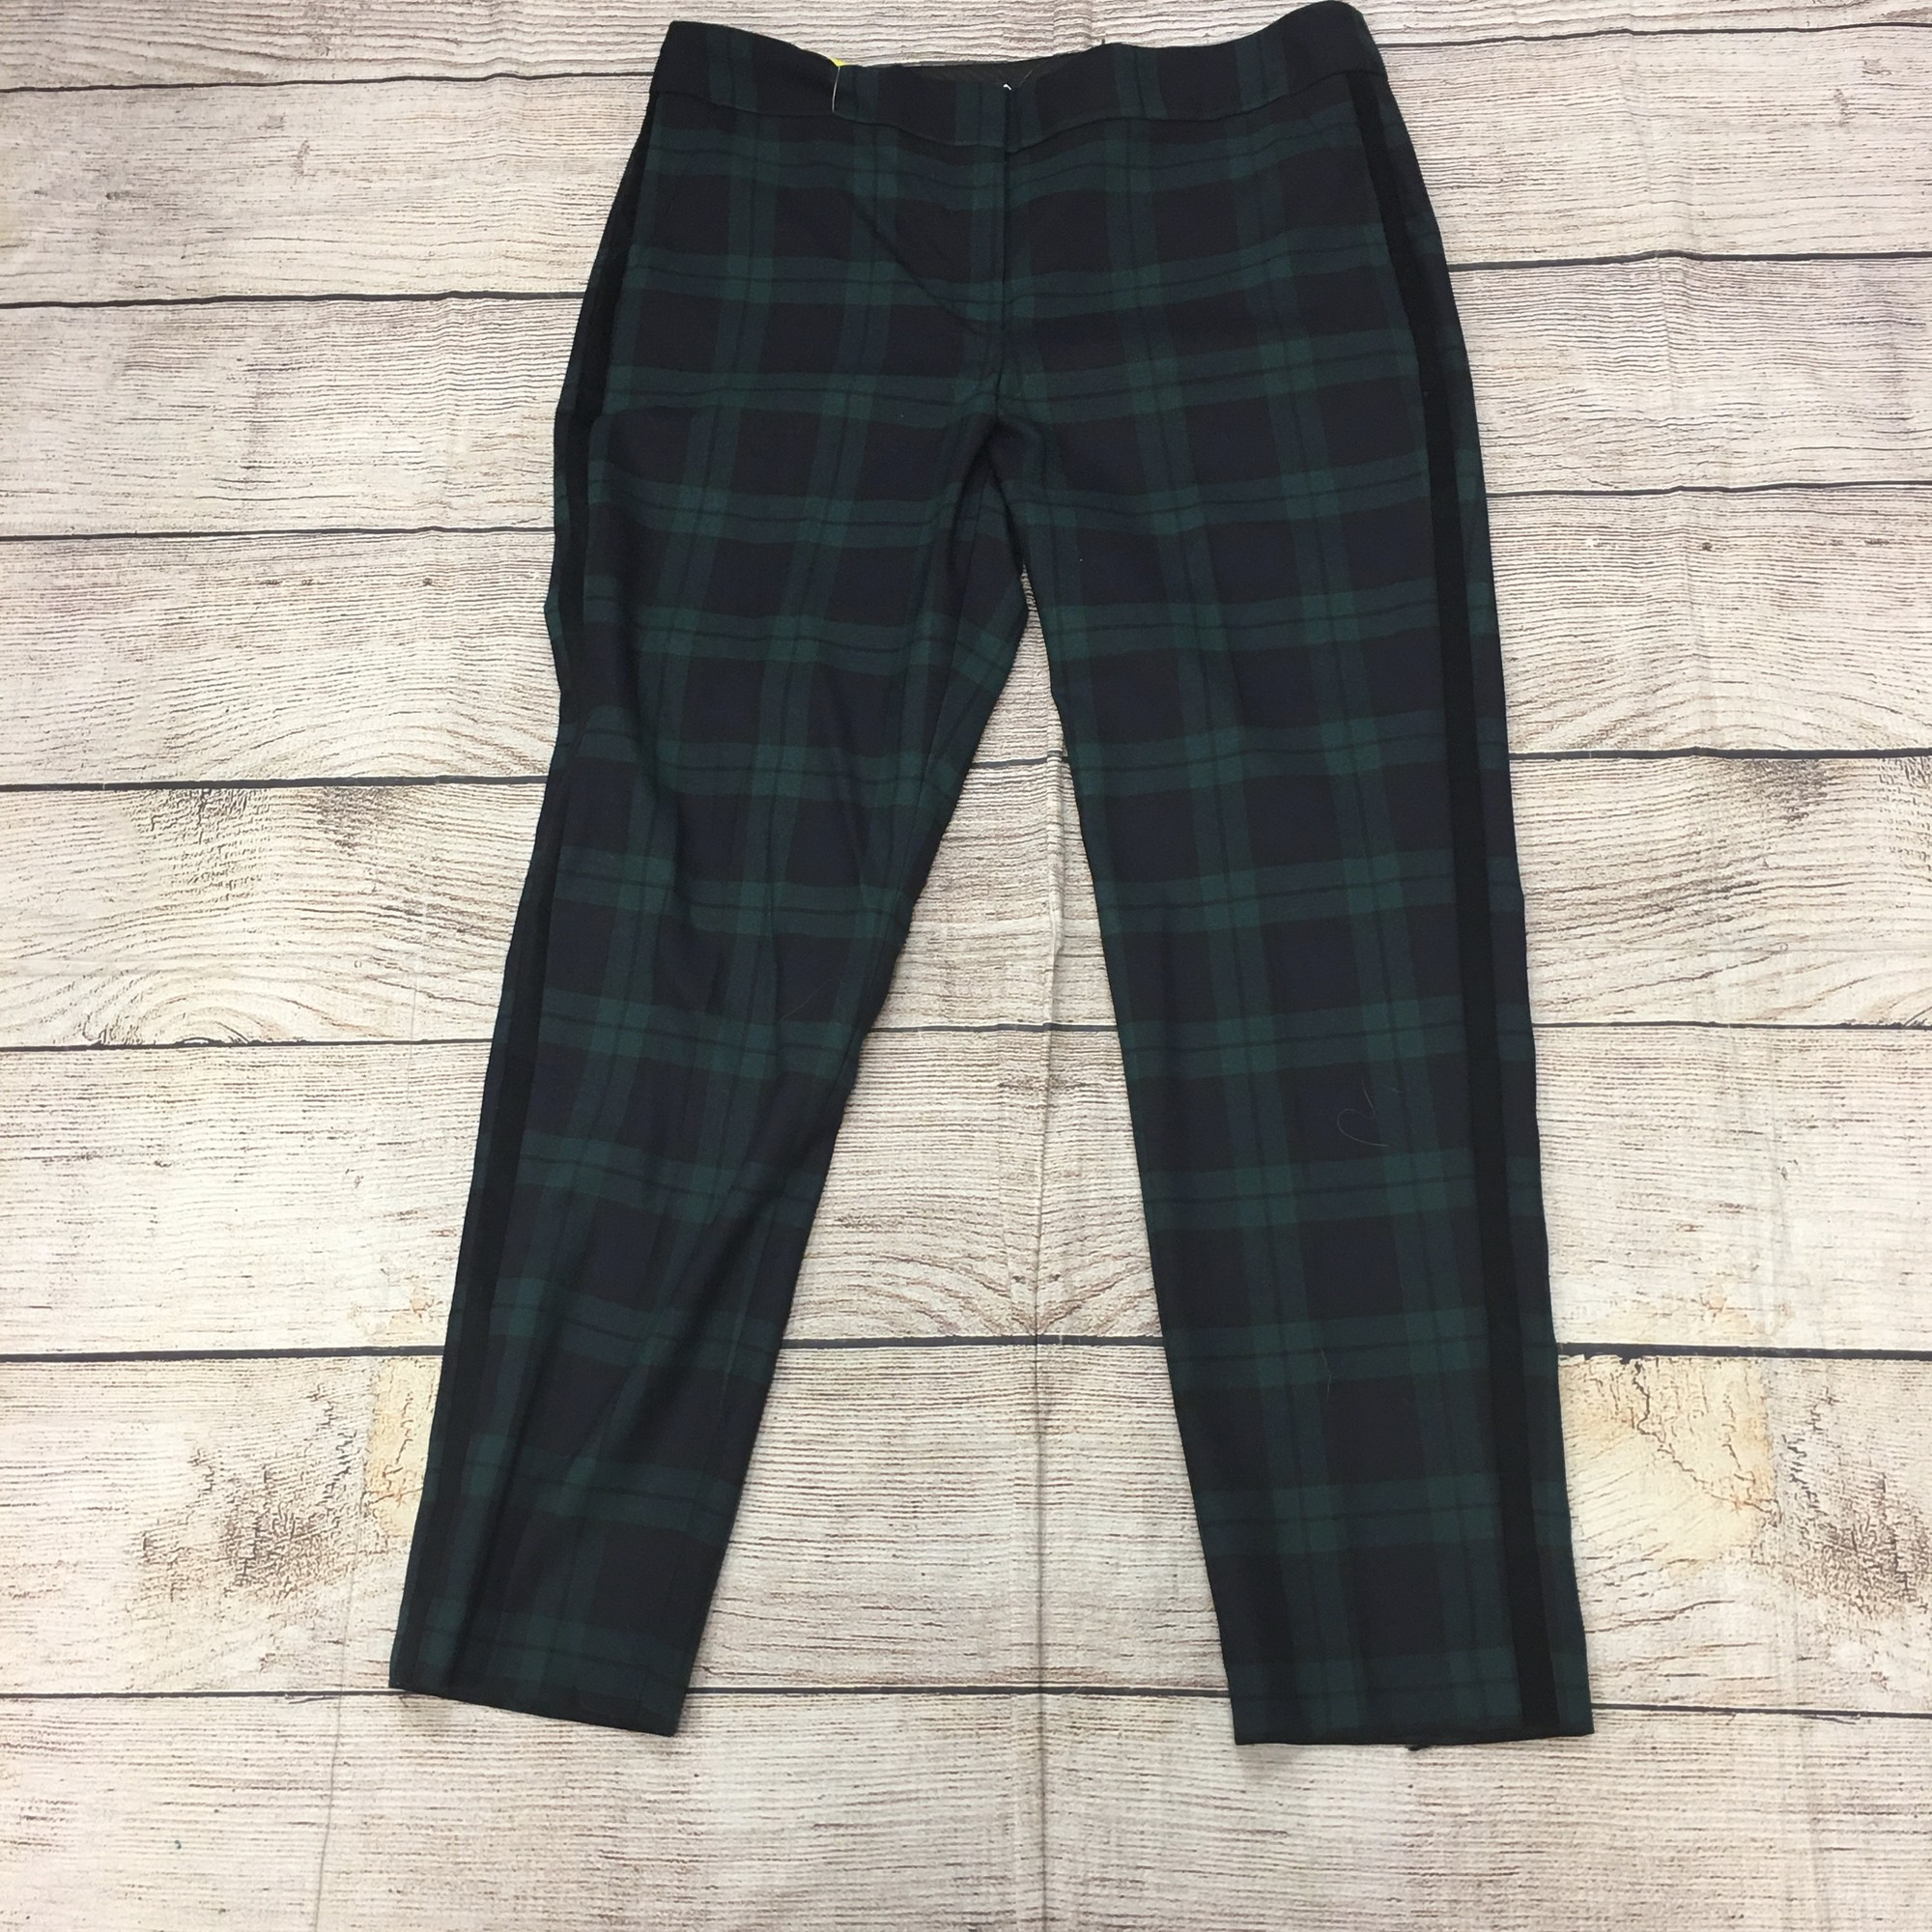 New Talbots Plaid Navy And Green Pants Size 12 Large